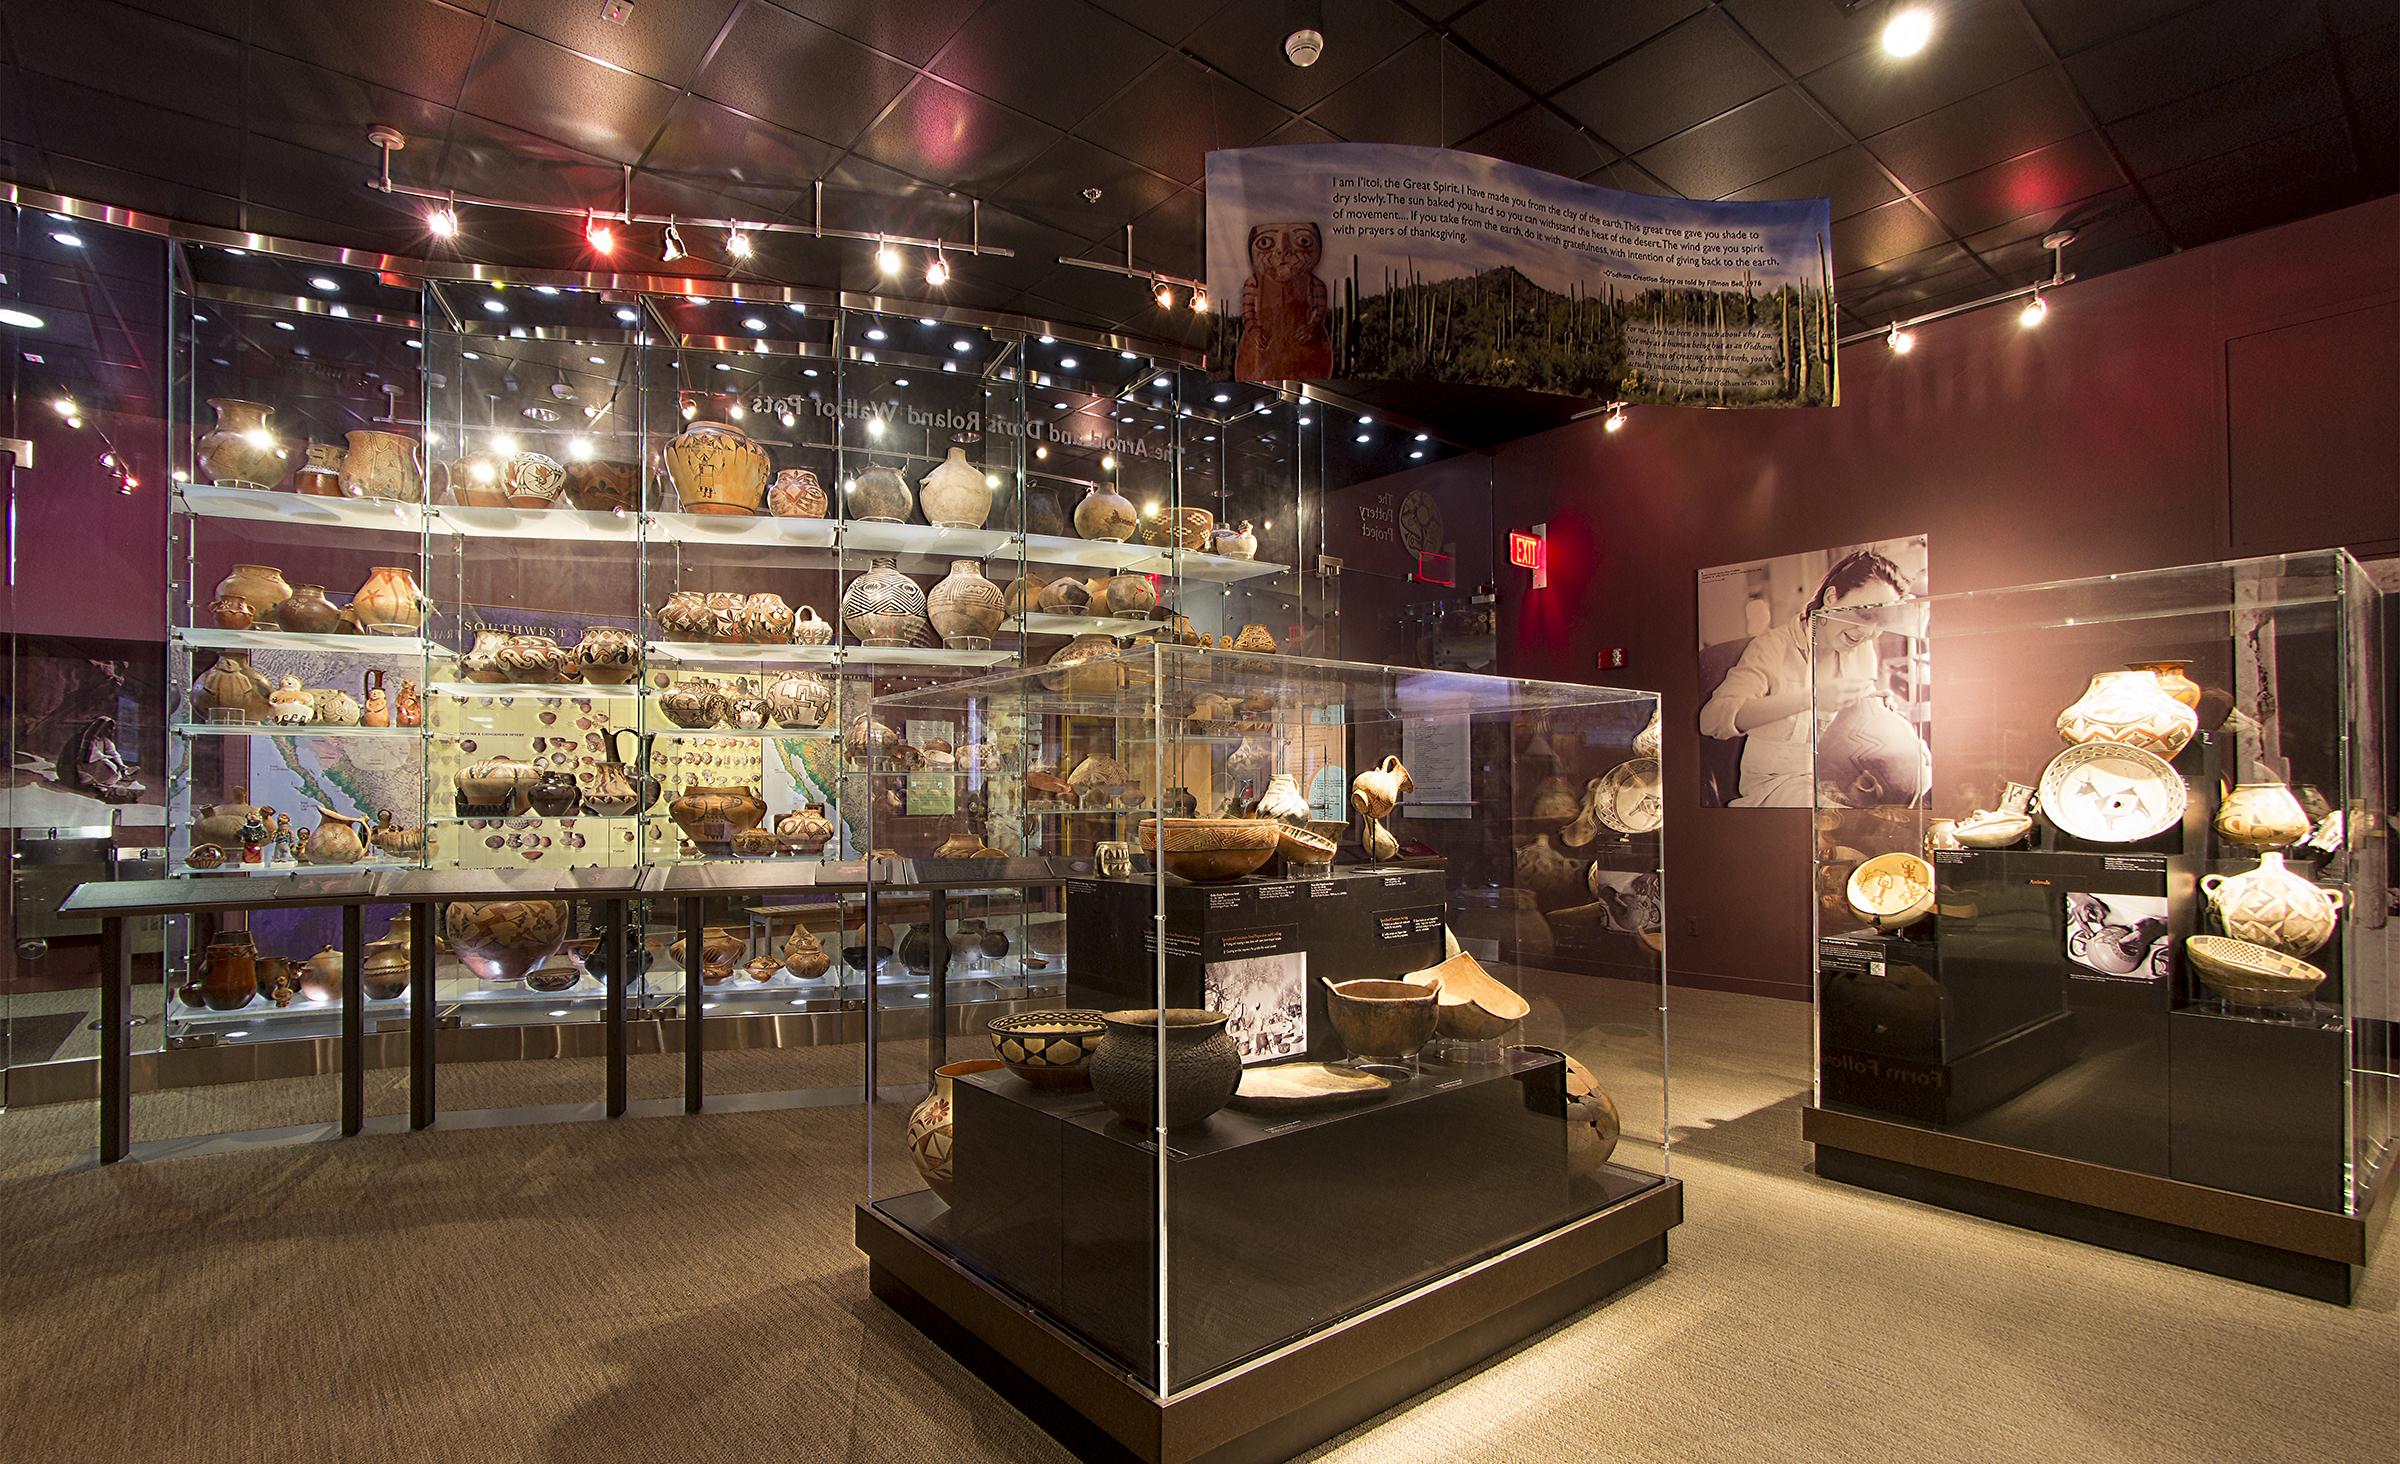 This images shows a view of the pottery gallery display cases and the Wall of Pots.